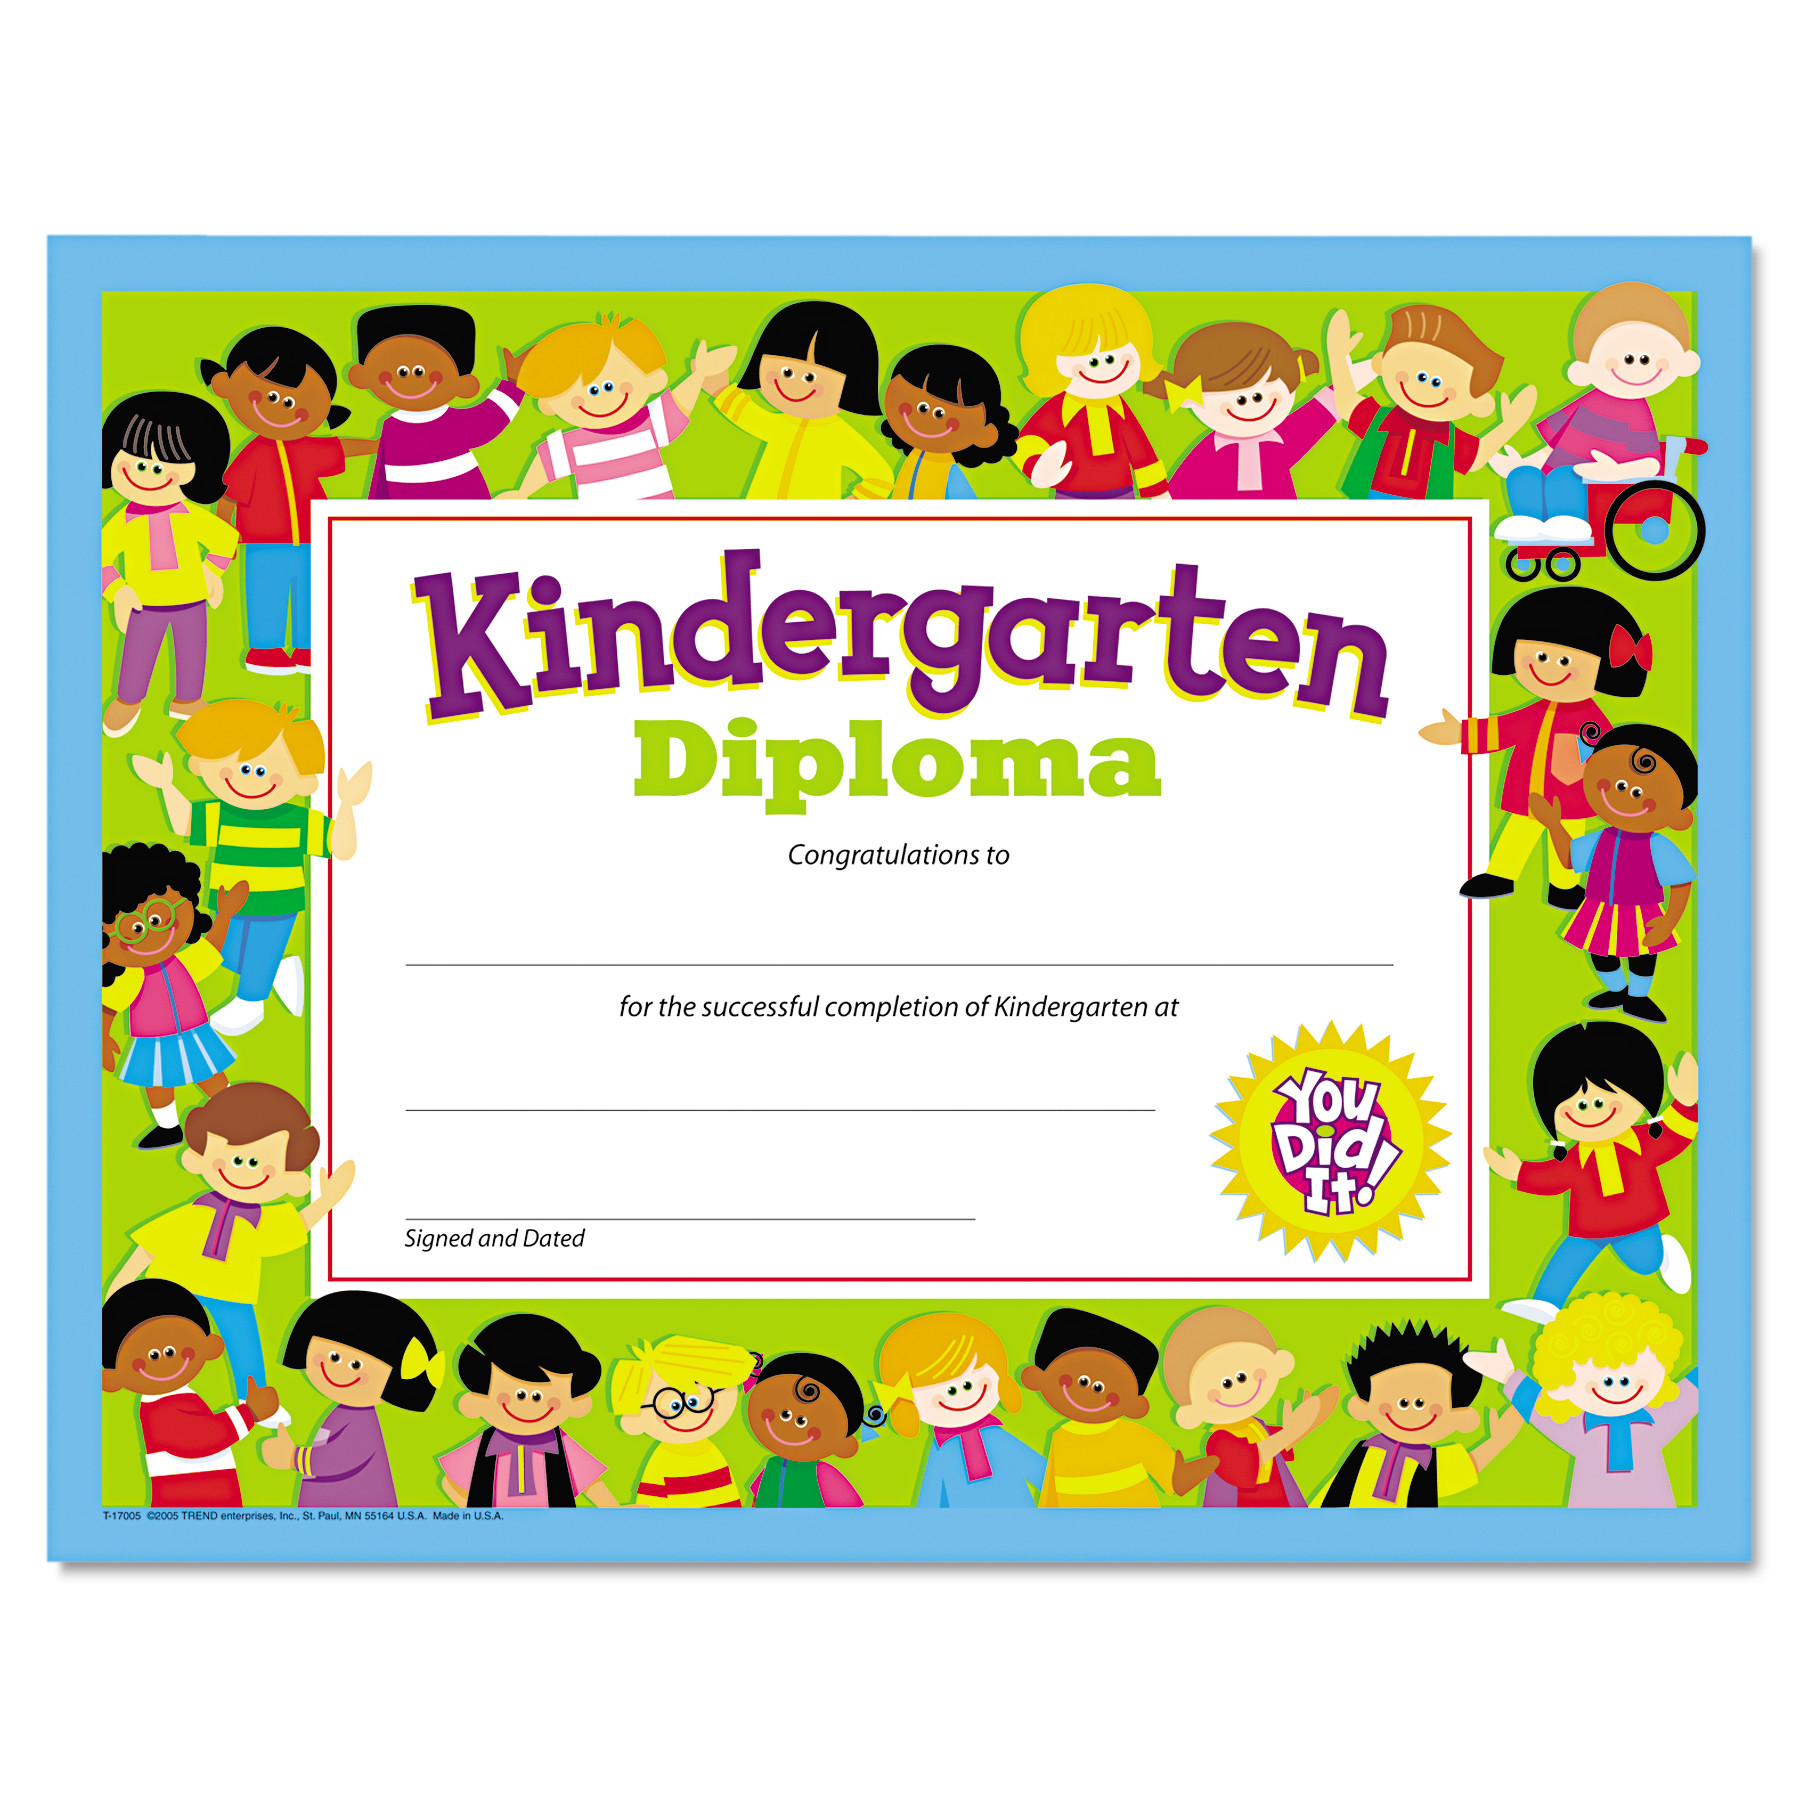 TREND Colorful Classic Certificates, Kindergarten Diploma, 8 1/2 x 11, 30 per Pack